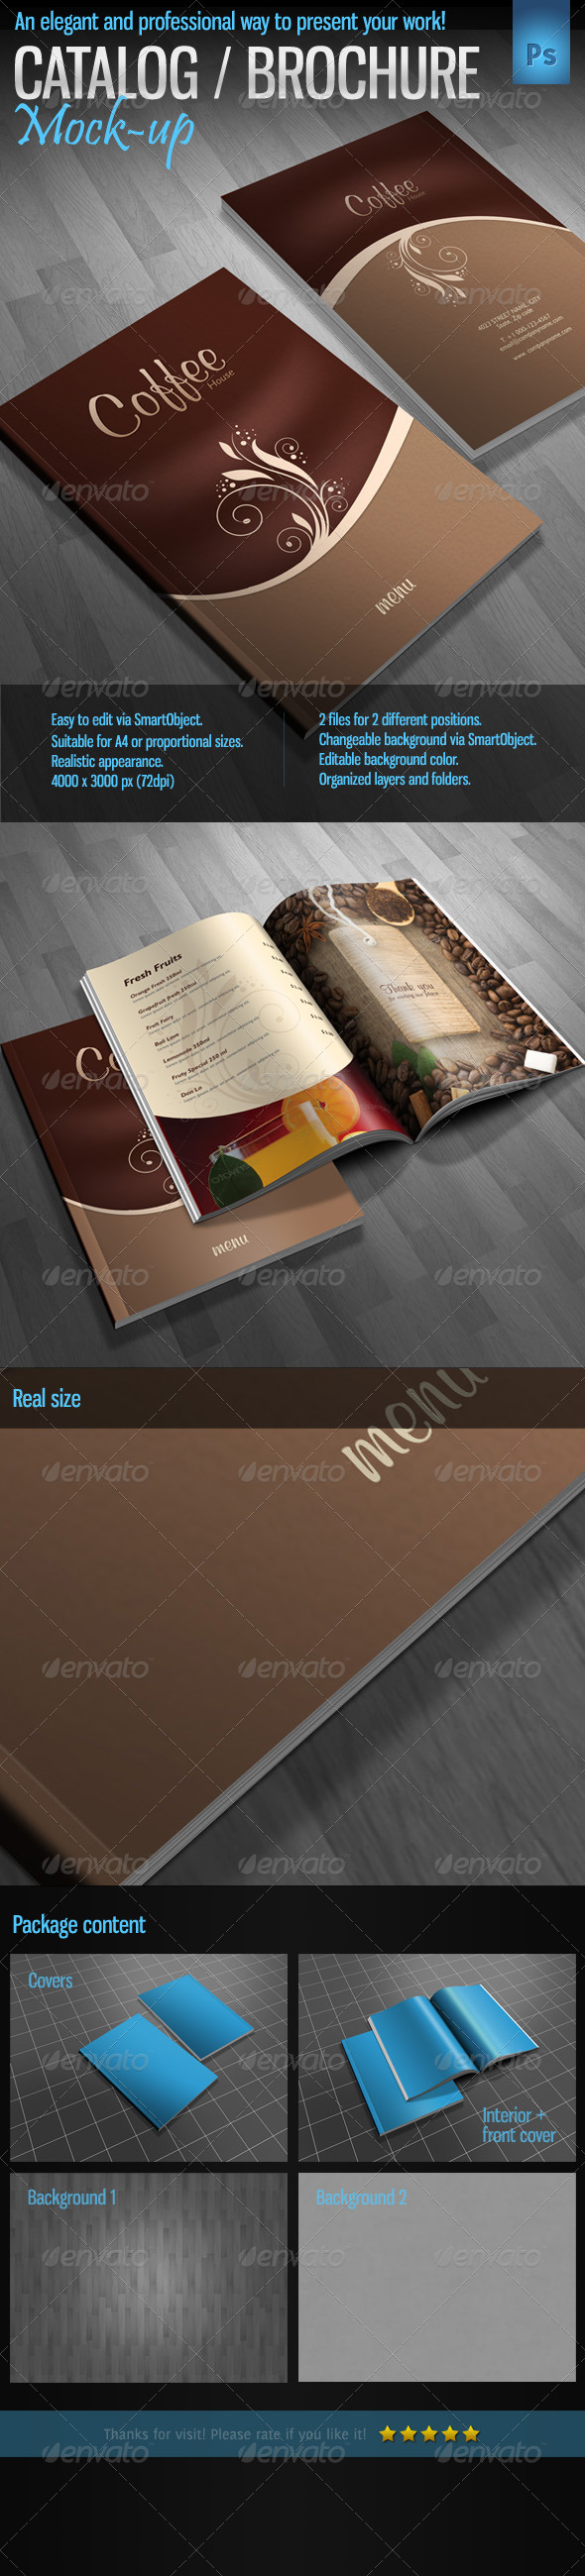 Brochure / Catalog / Magazine Mock-Up - Product Mock-Ups Graphics